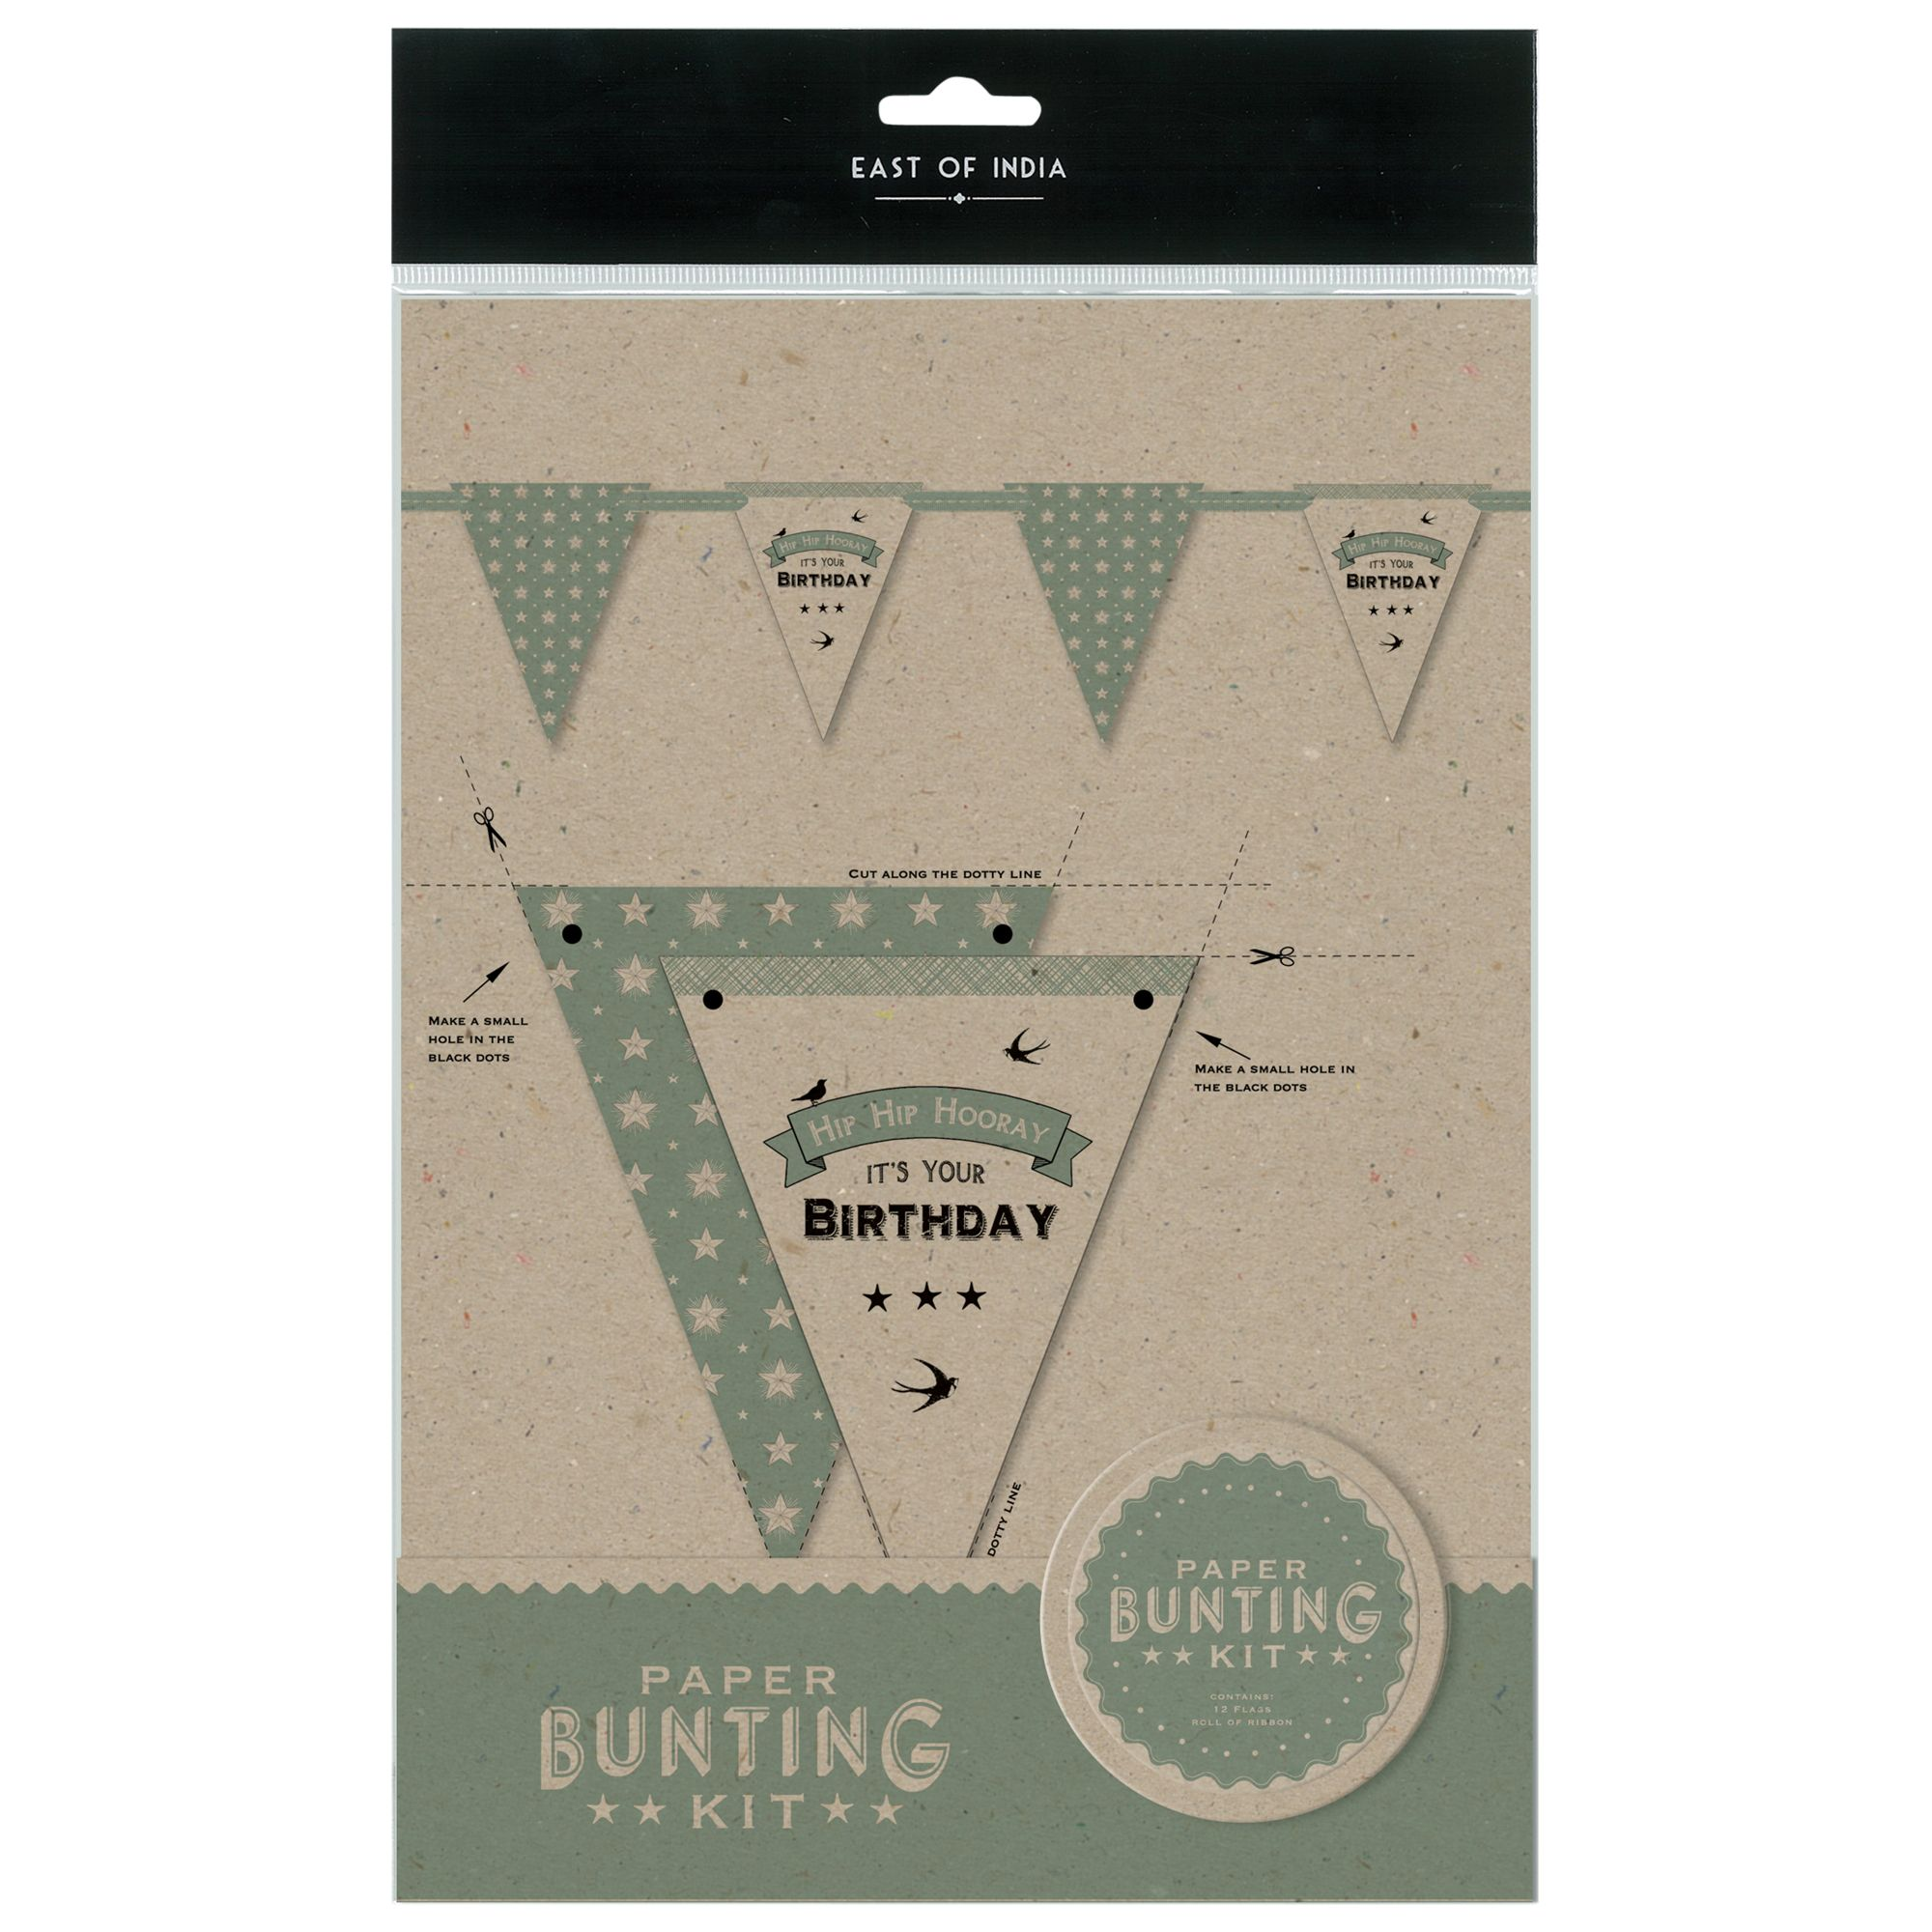 East of India East of India Birthday Bunting Kit